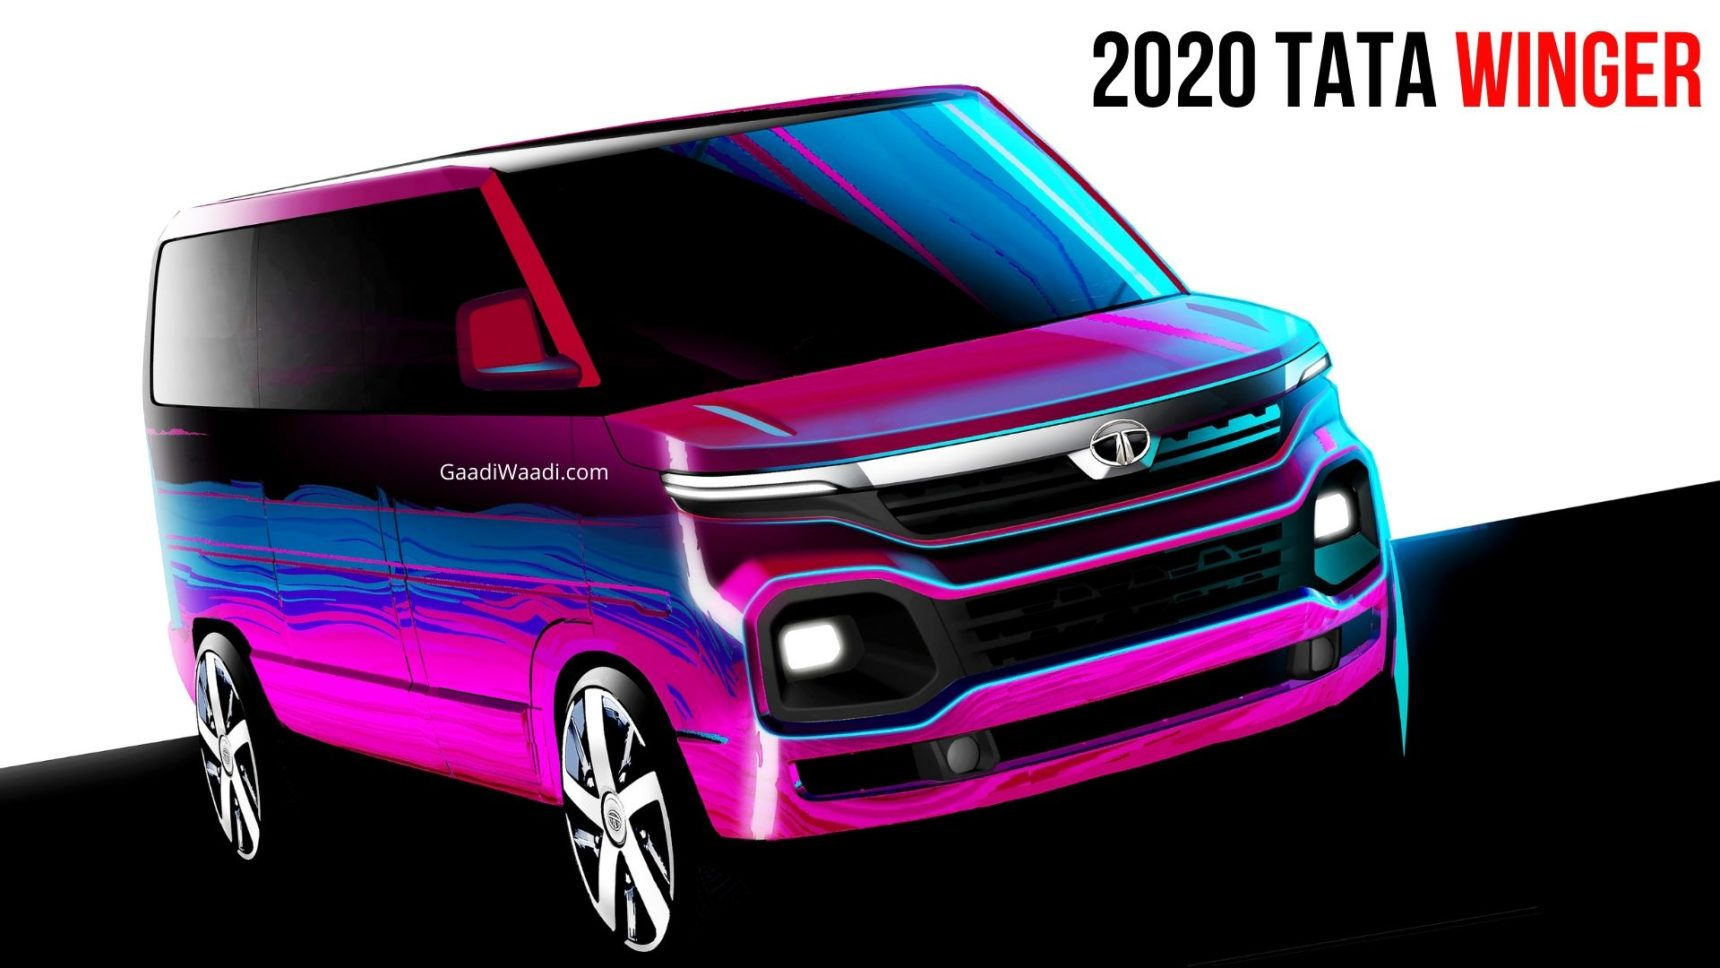 2020 Tata Winger With Same Design Language As Harrier Debuts At Auto Expo - GaadiWaadi.com thumbnail